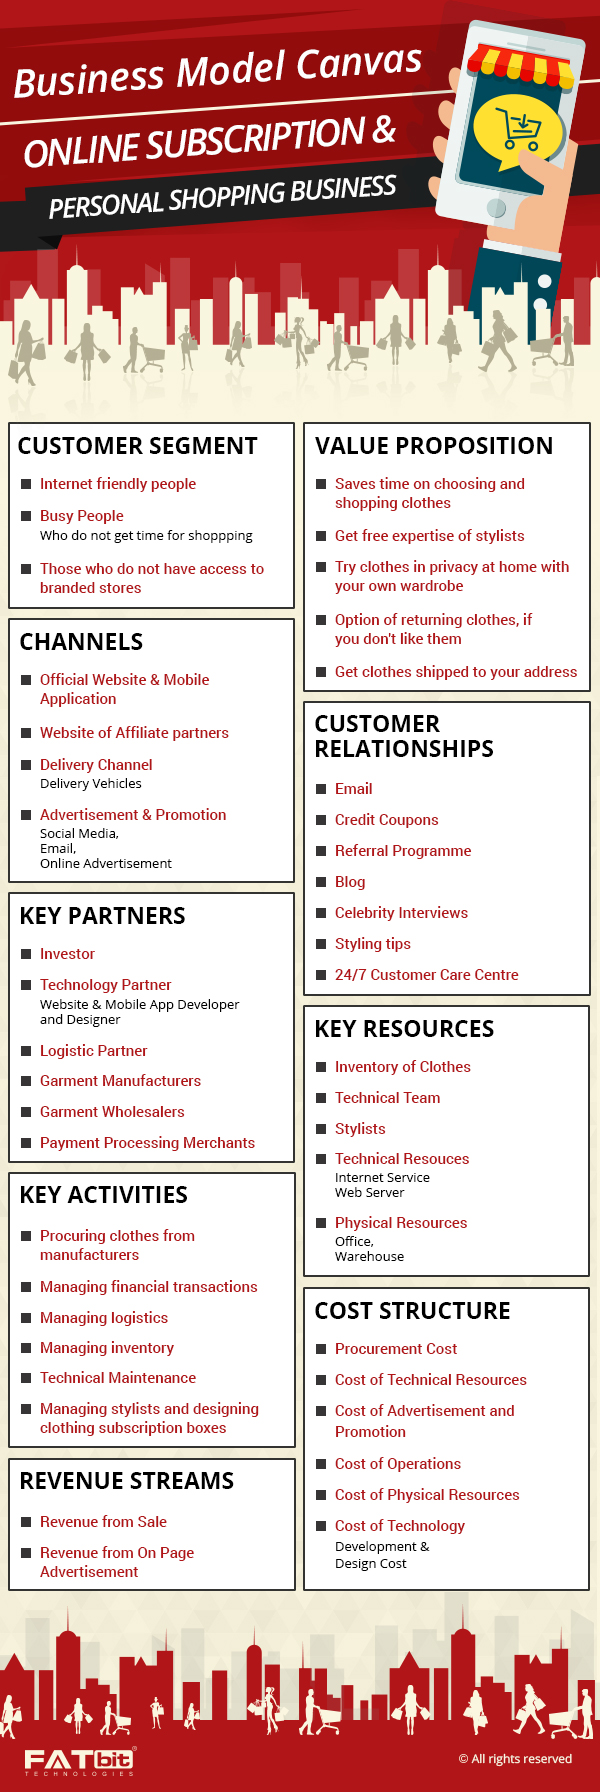 Business Model Canvas of Online Subscription and Personal Shopping